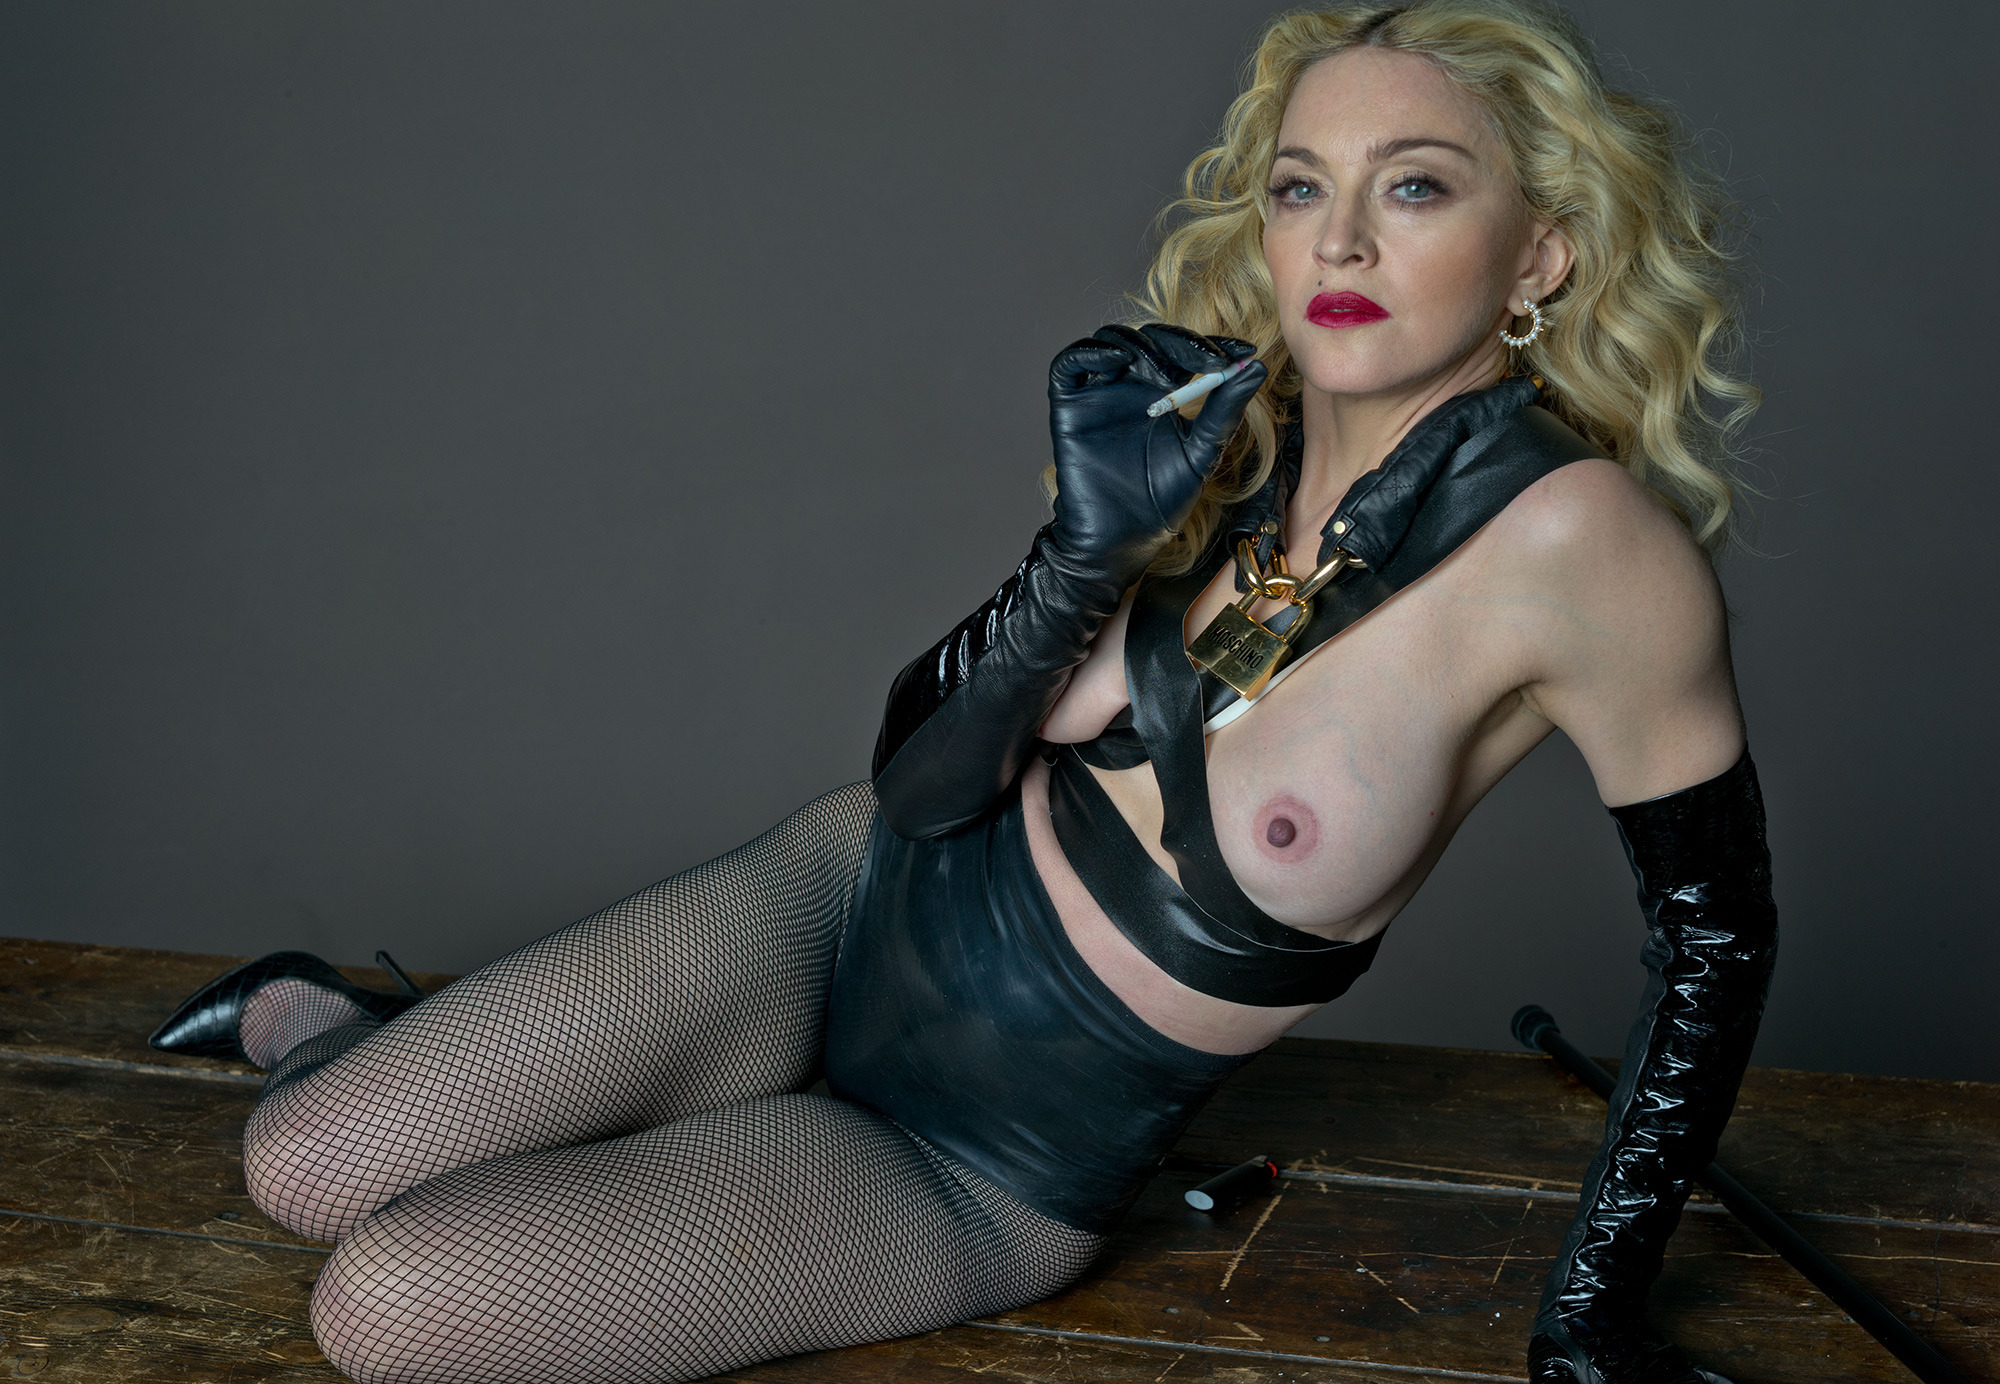 madonna s never been afraid to use her own body as a marketing tool